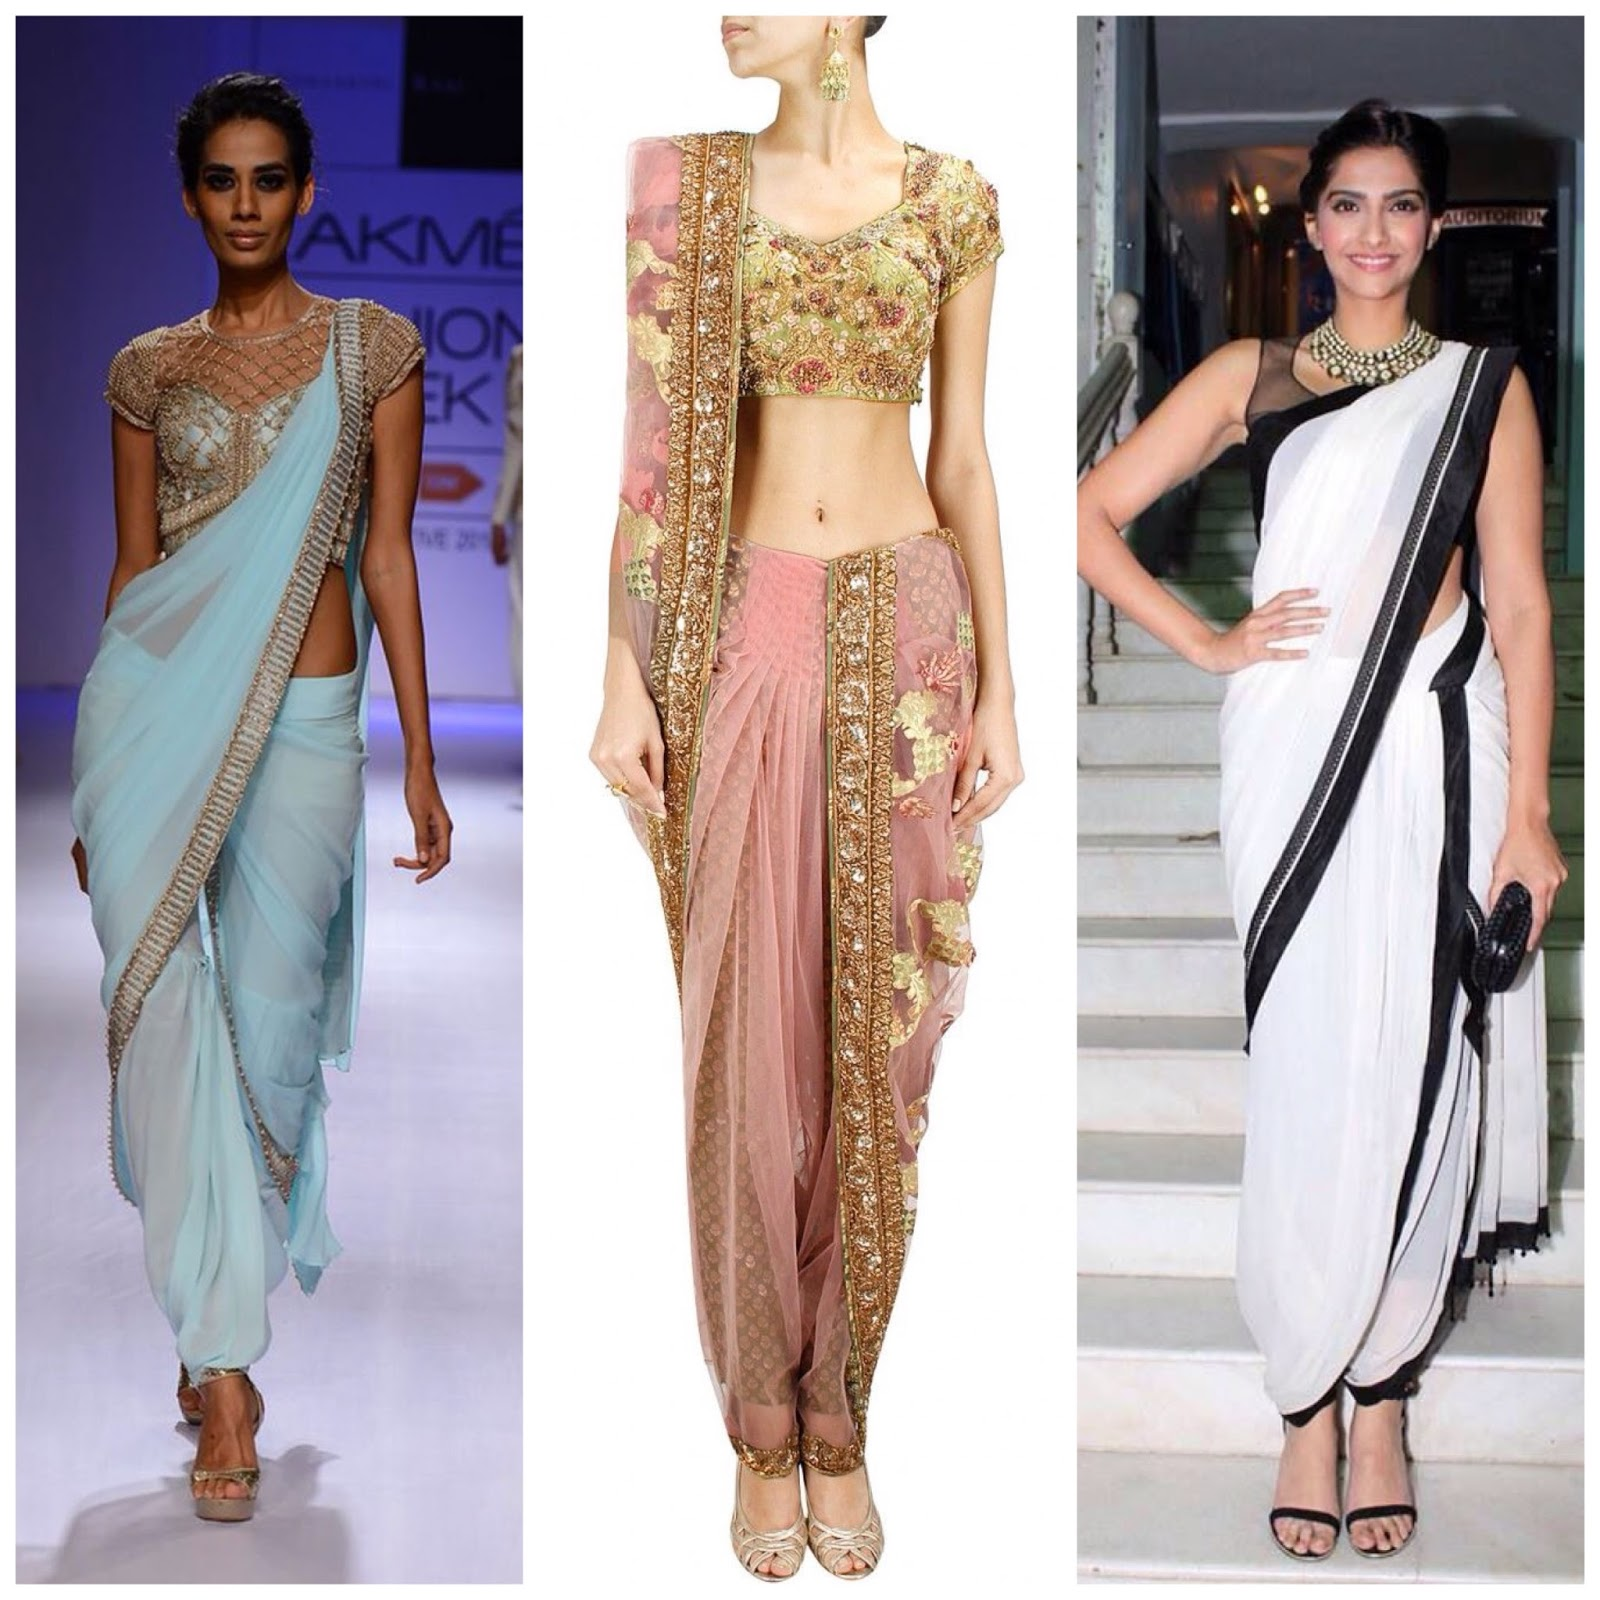 saree style to drape drapes fashion blog jacket collage look trends interesting your copy a latest reinvent wear